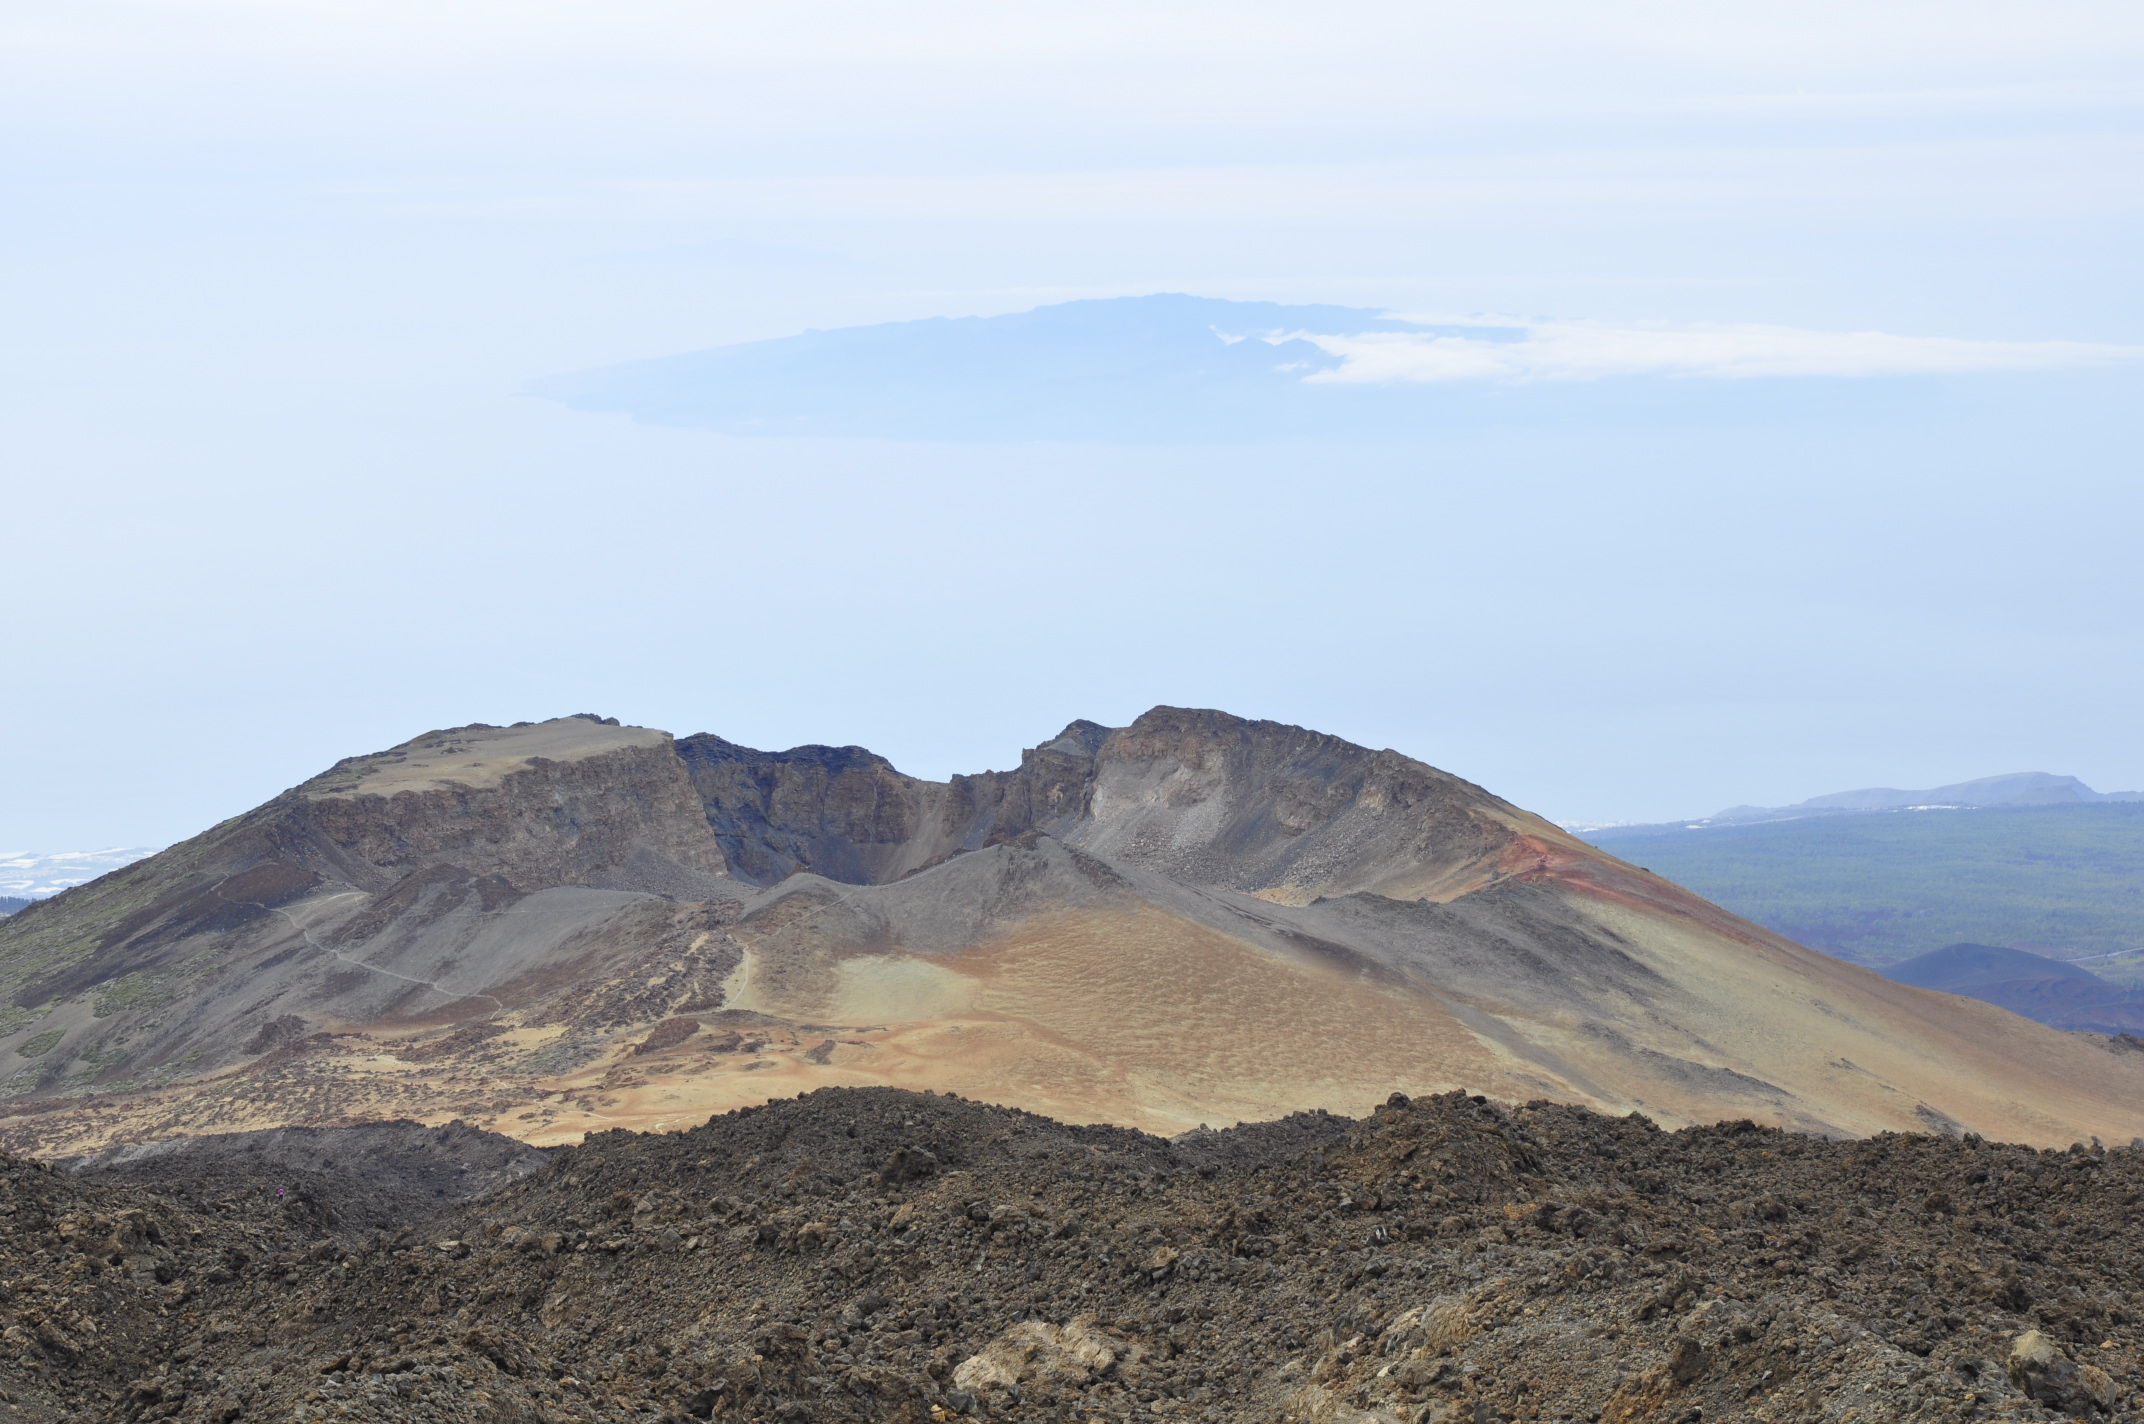 Pico Viejo crater, With the remnants of the lava lake, and La Gomera far away and below.